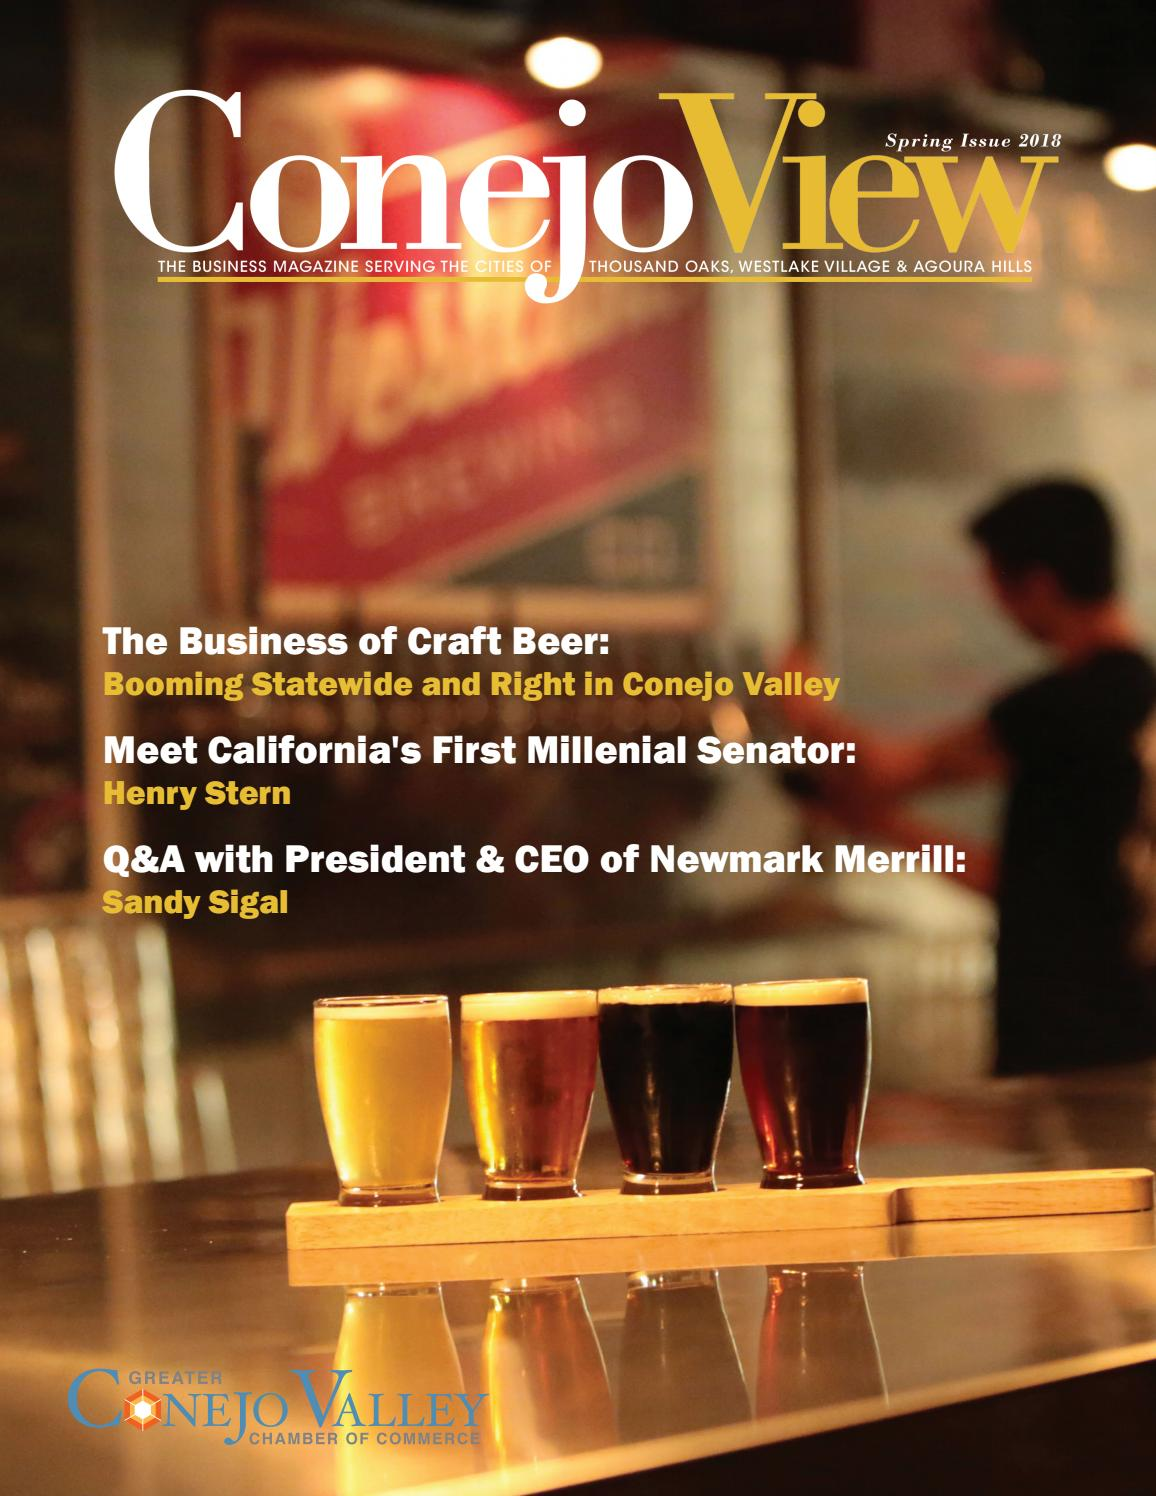 ConejoView Spring 2018 by ConejoView - Greater Conejo Valley Chamber of  Commerce - issuu